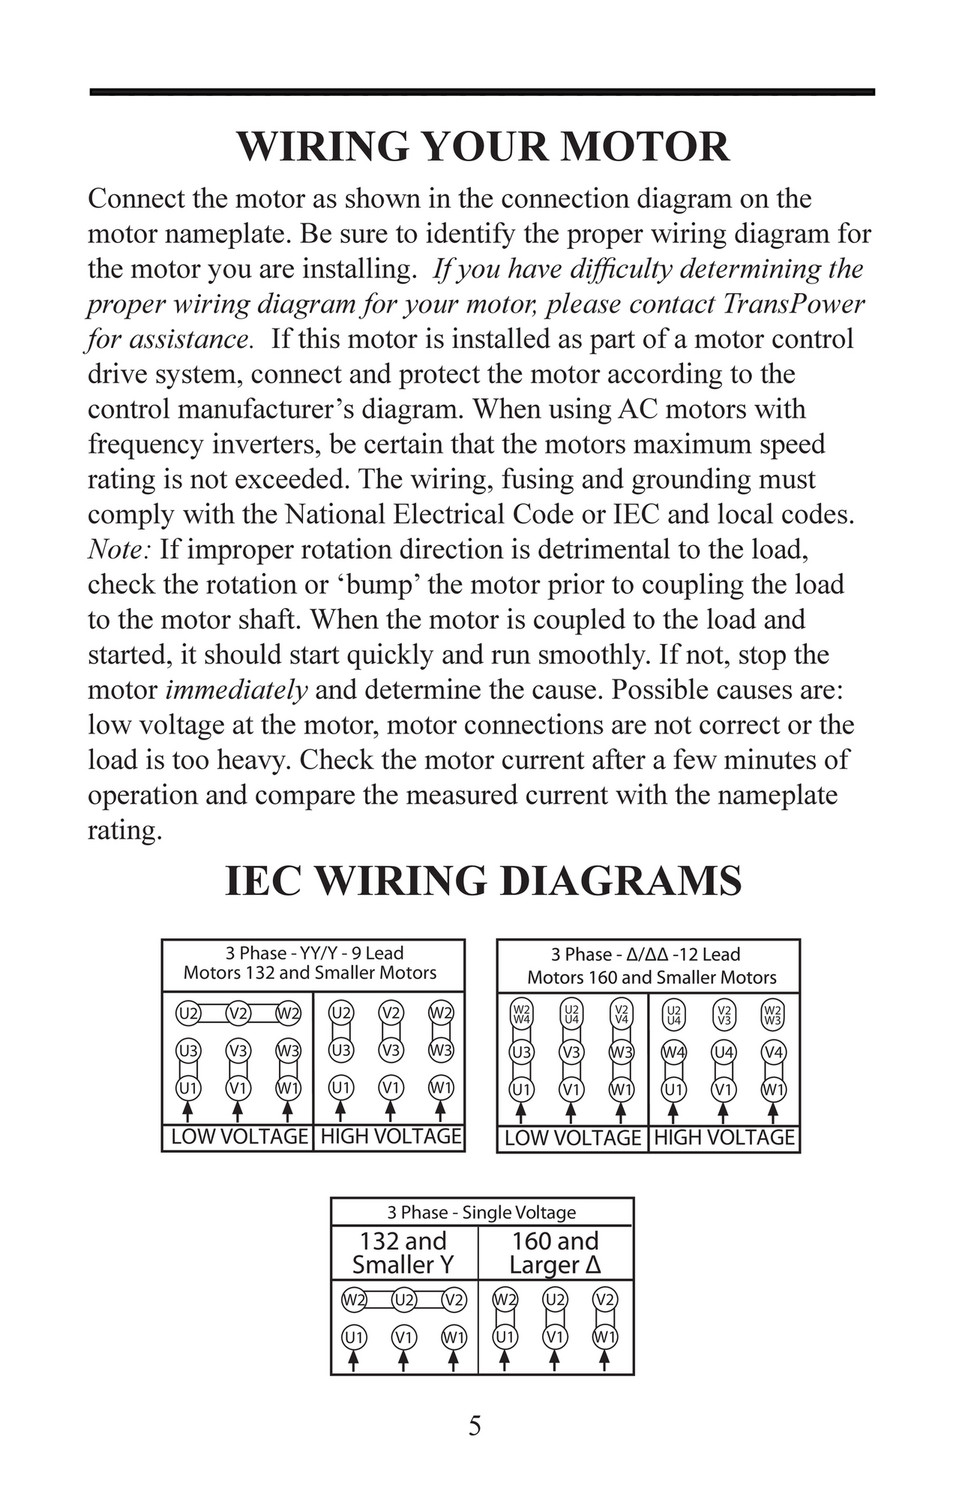 3 Phase 9 Lead Motor Wiring Diagram from view.publitas.com